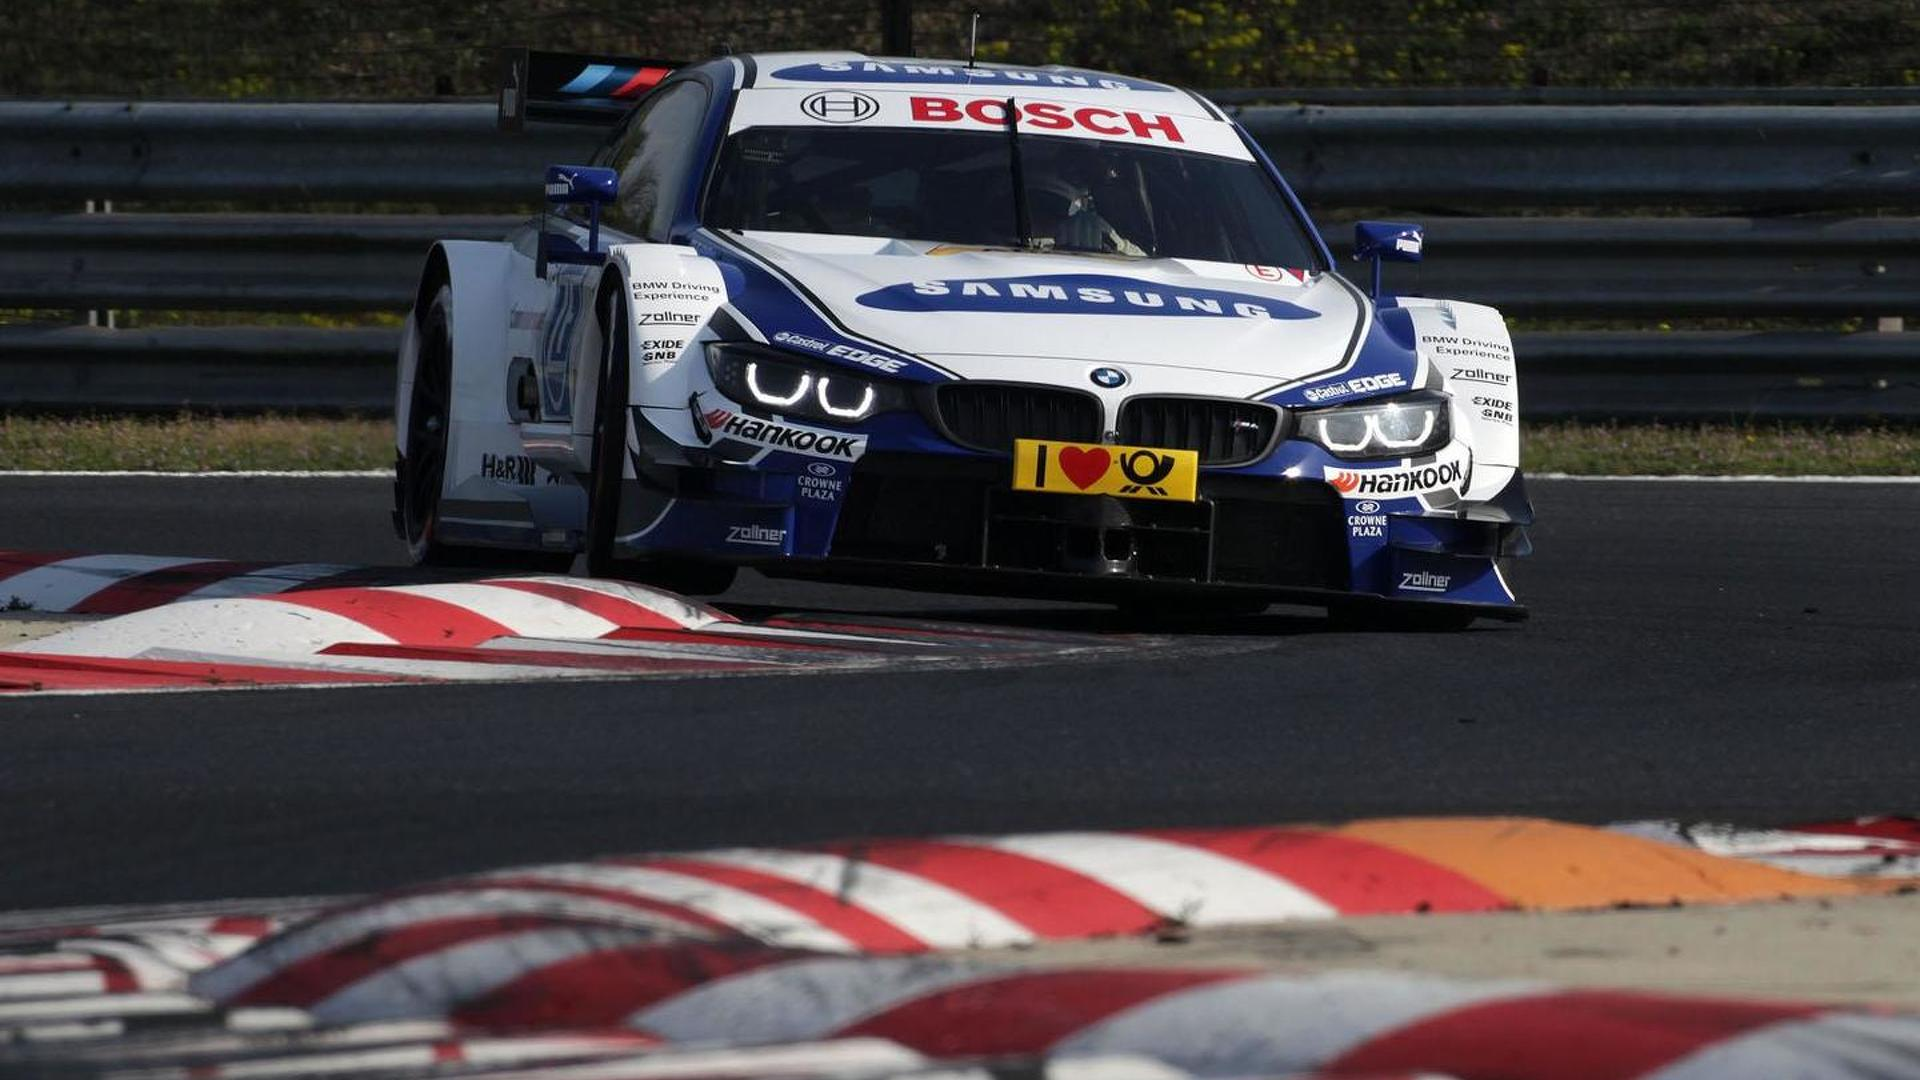 BMW shows off four new liveries for the M4 DTM